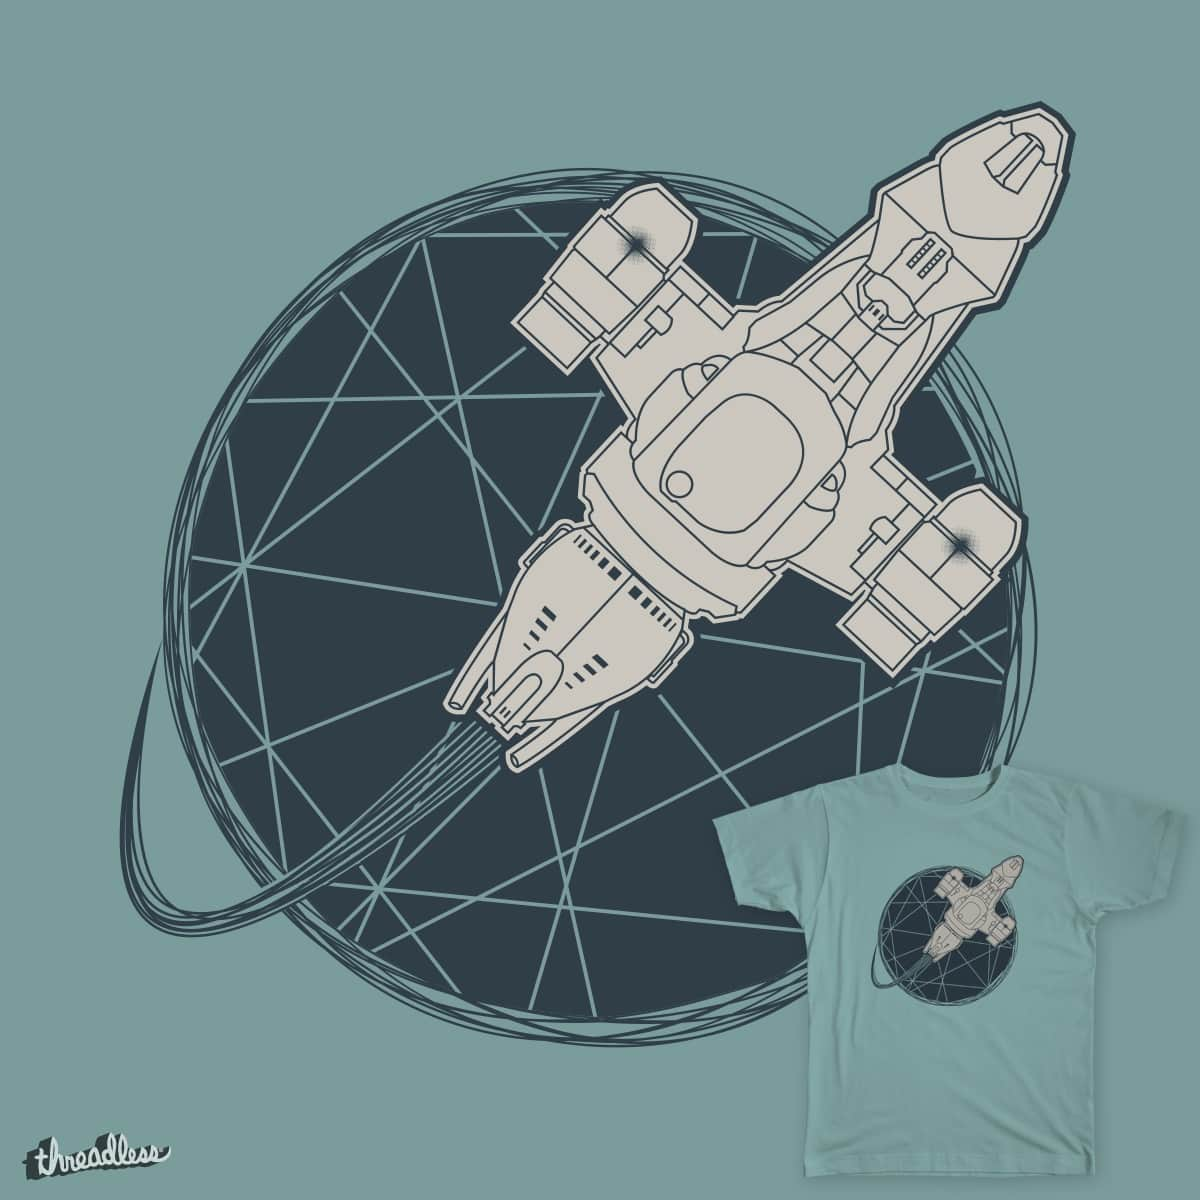 Shining Star by yanmos on Threadless